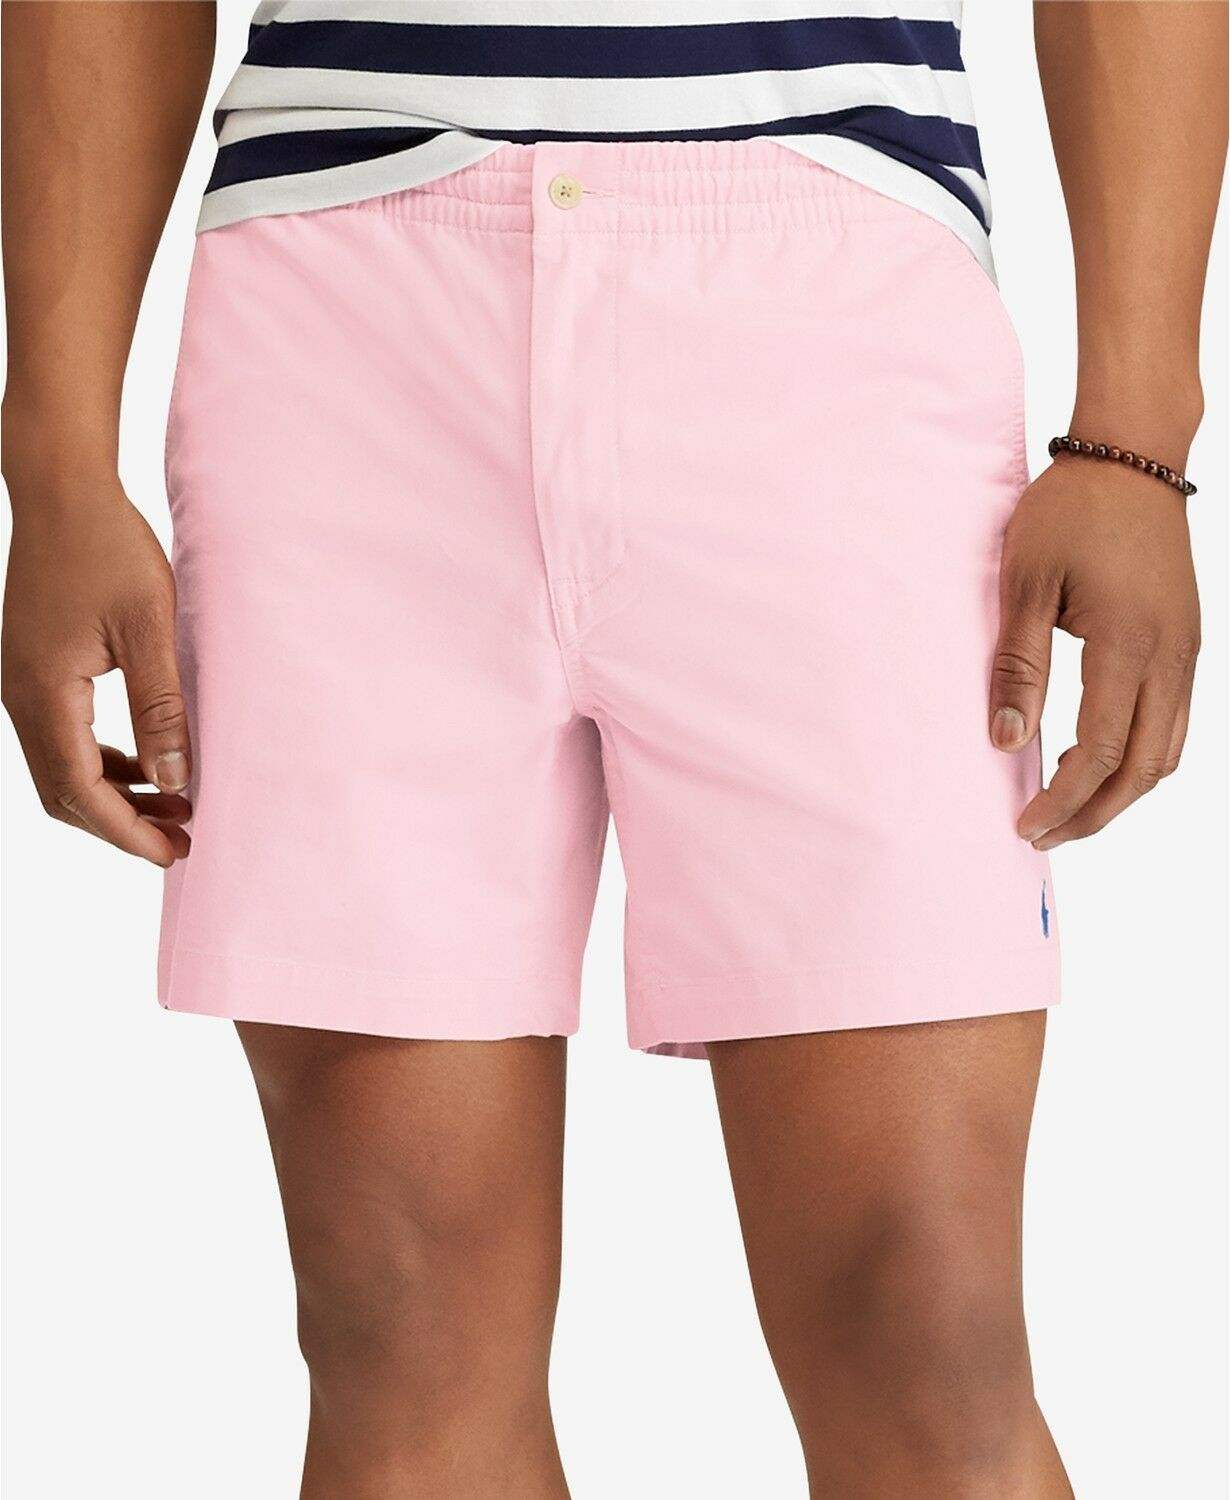 Polo Ralph Lauren 0520 Mens Pink Classic Fit Prepster Shorts Size XX-Large